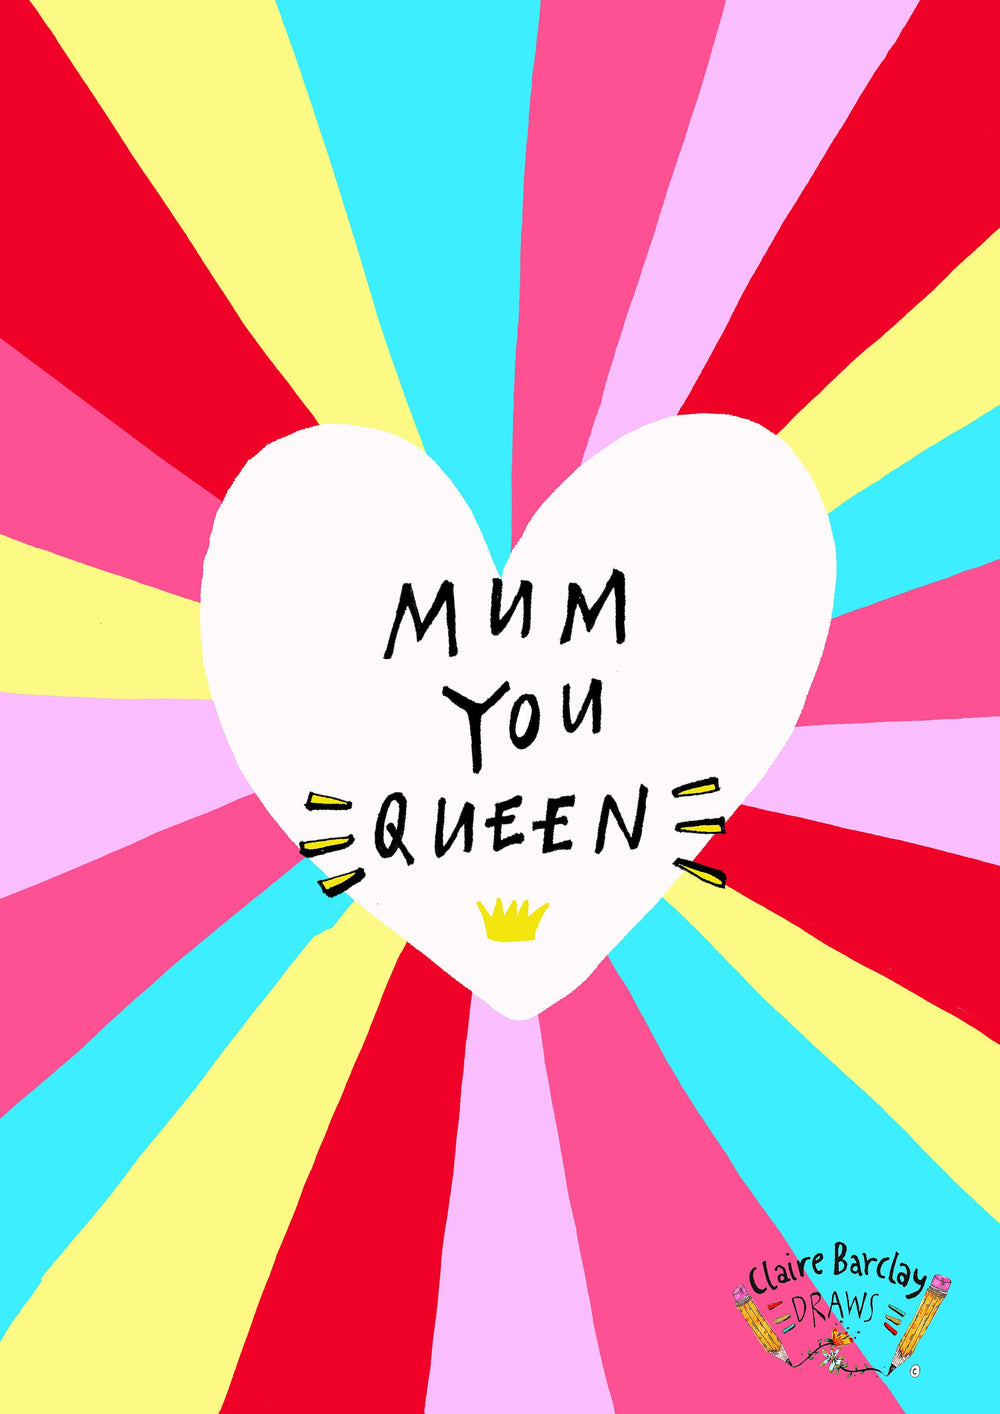 MUM YOU QUEEN Mother's Day Greetings Card